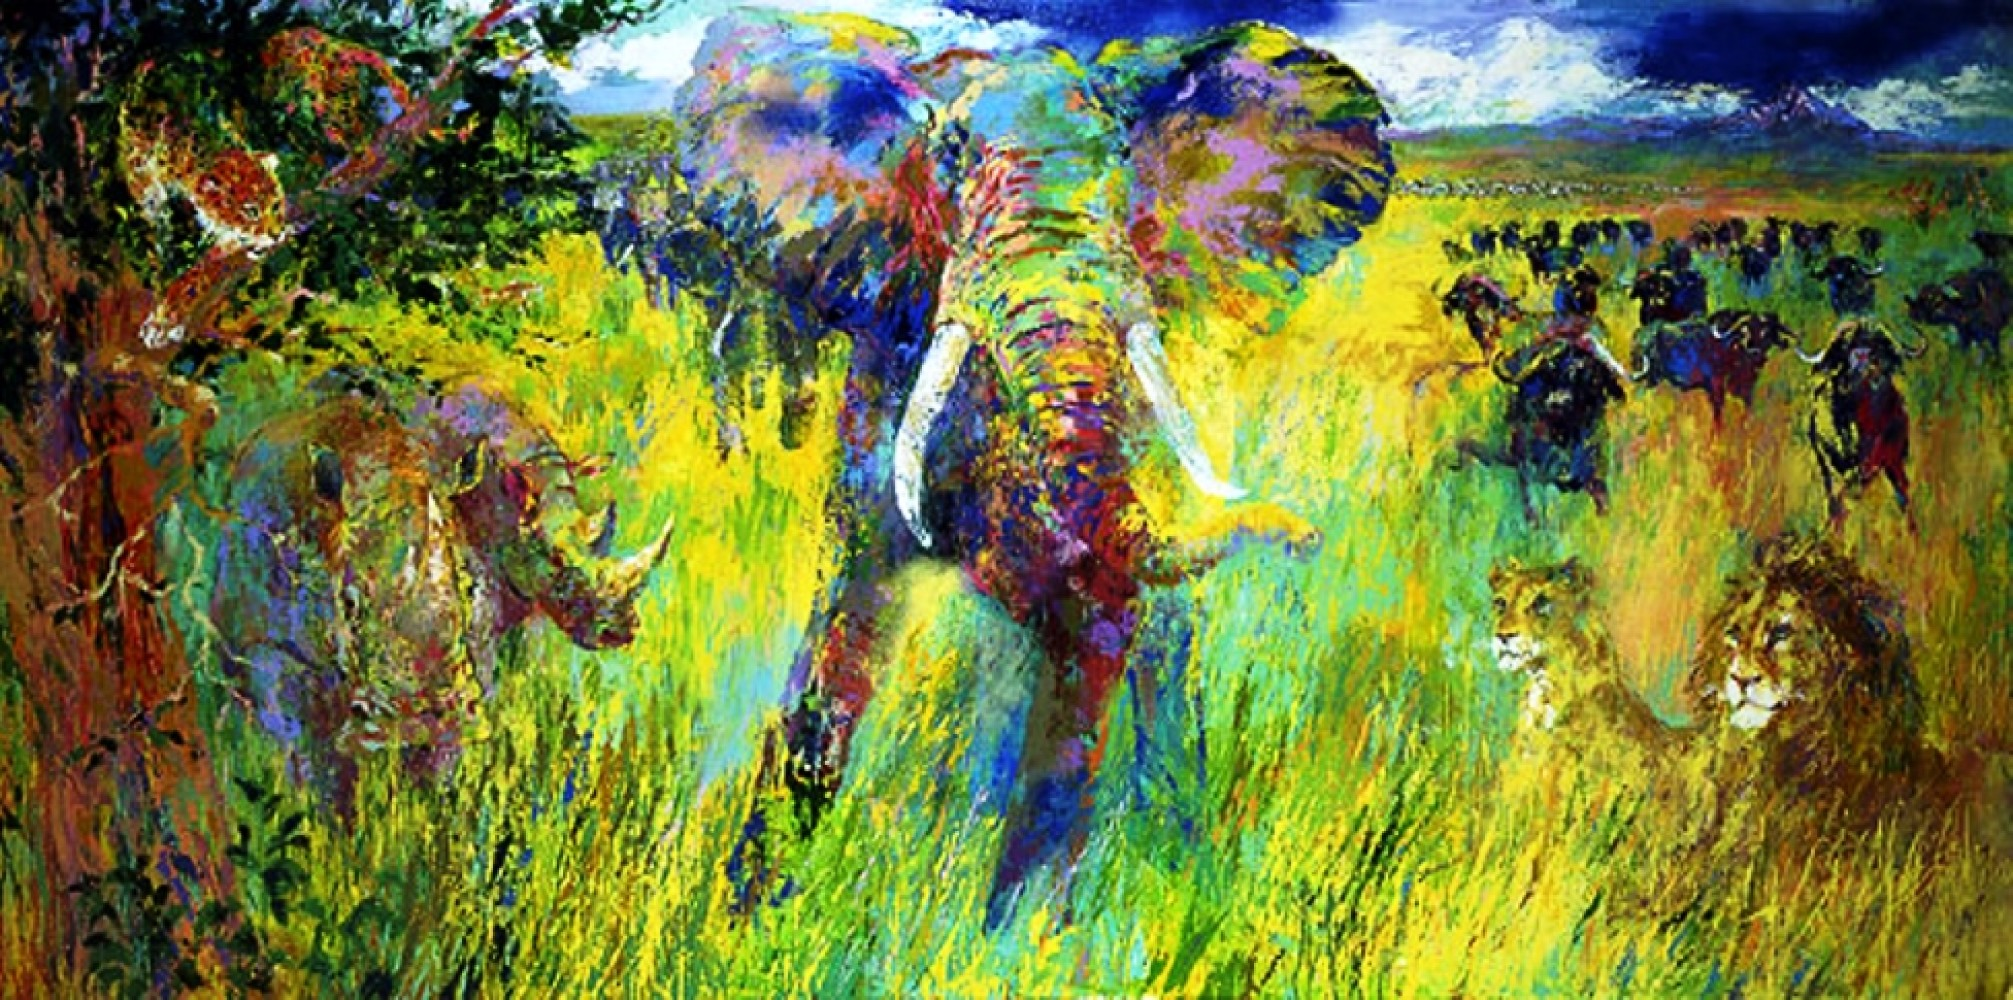 Leroy neiman art for sale for Art print for sale